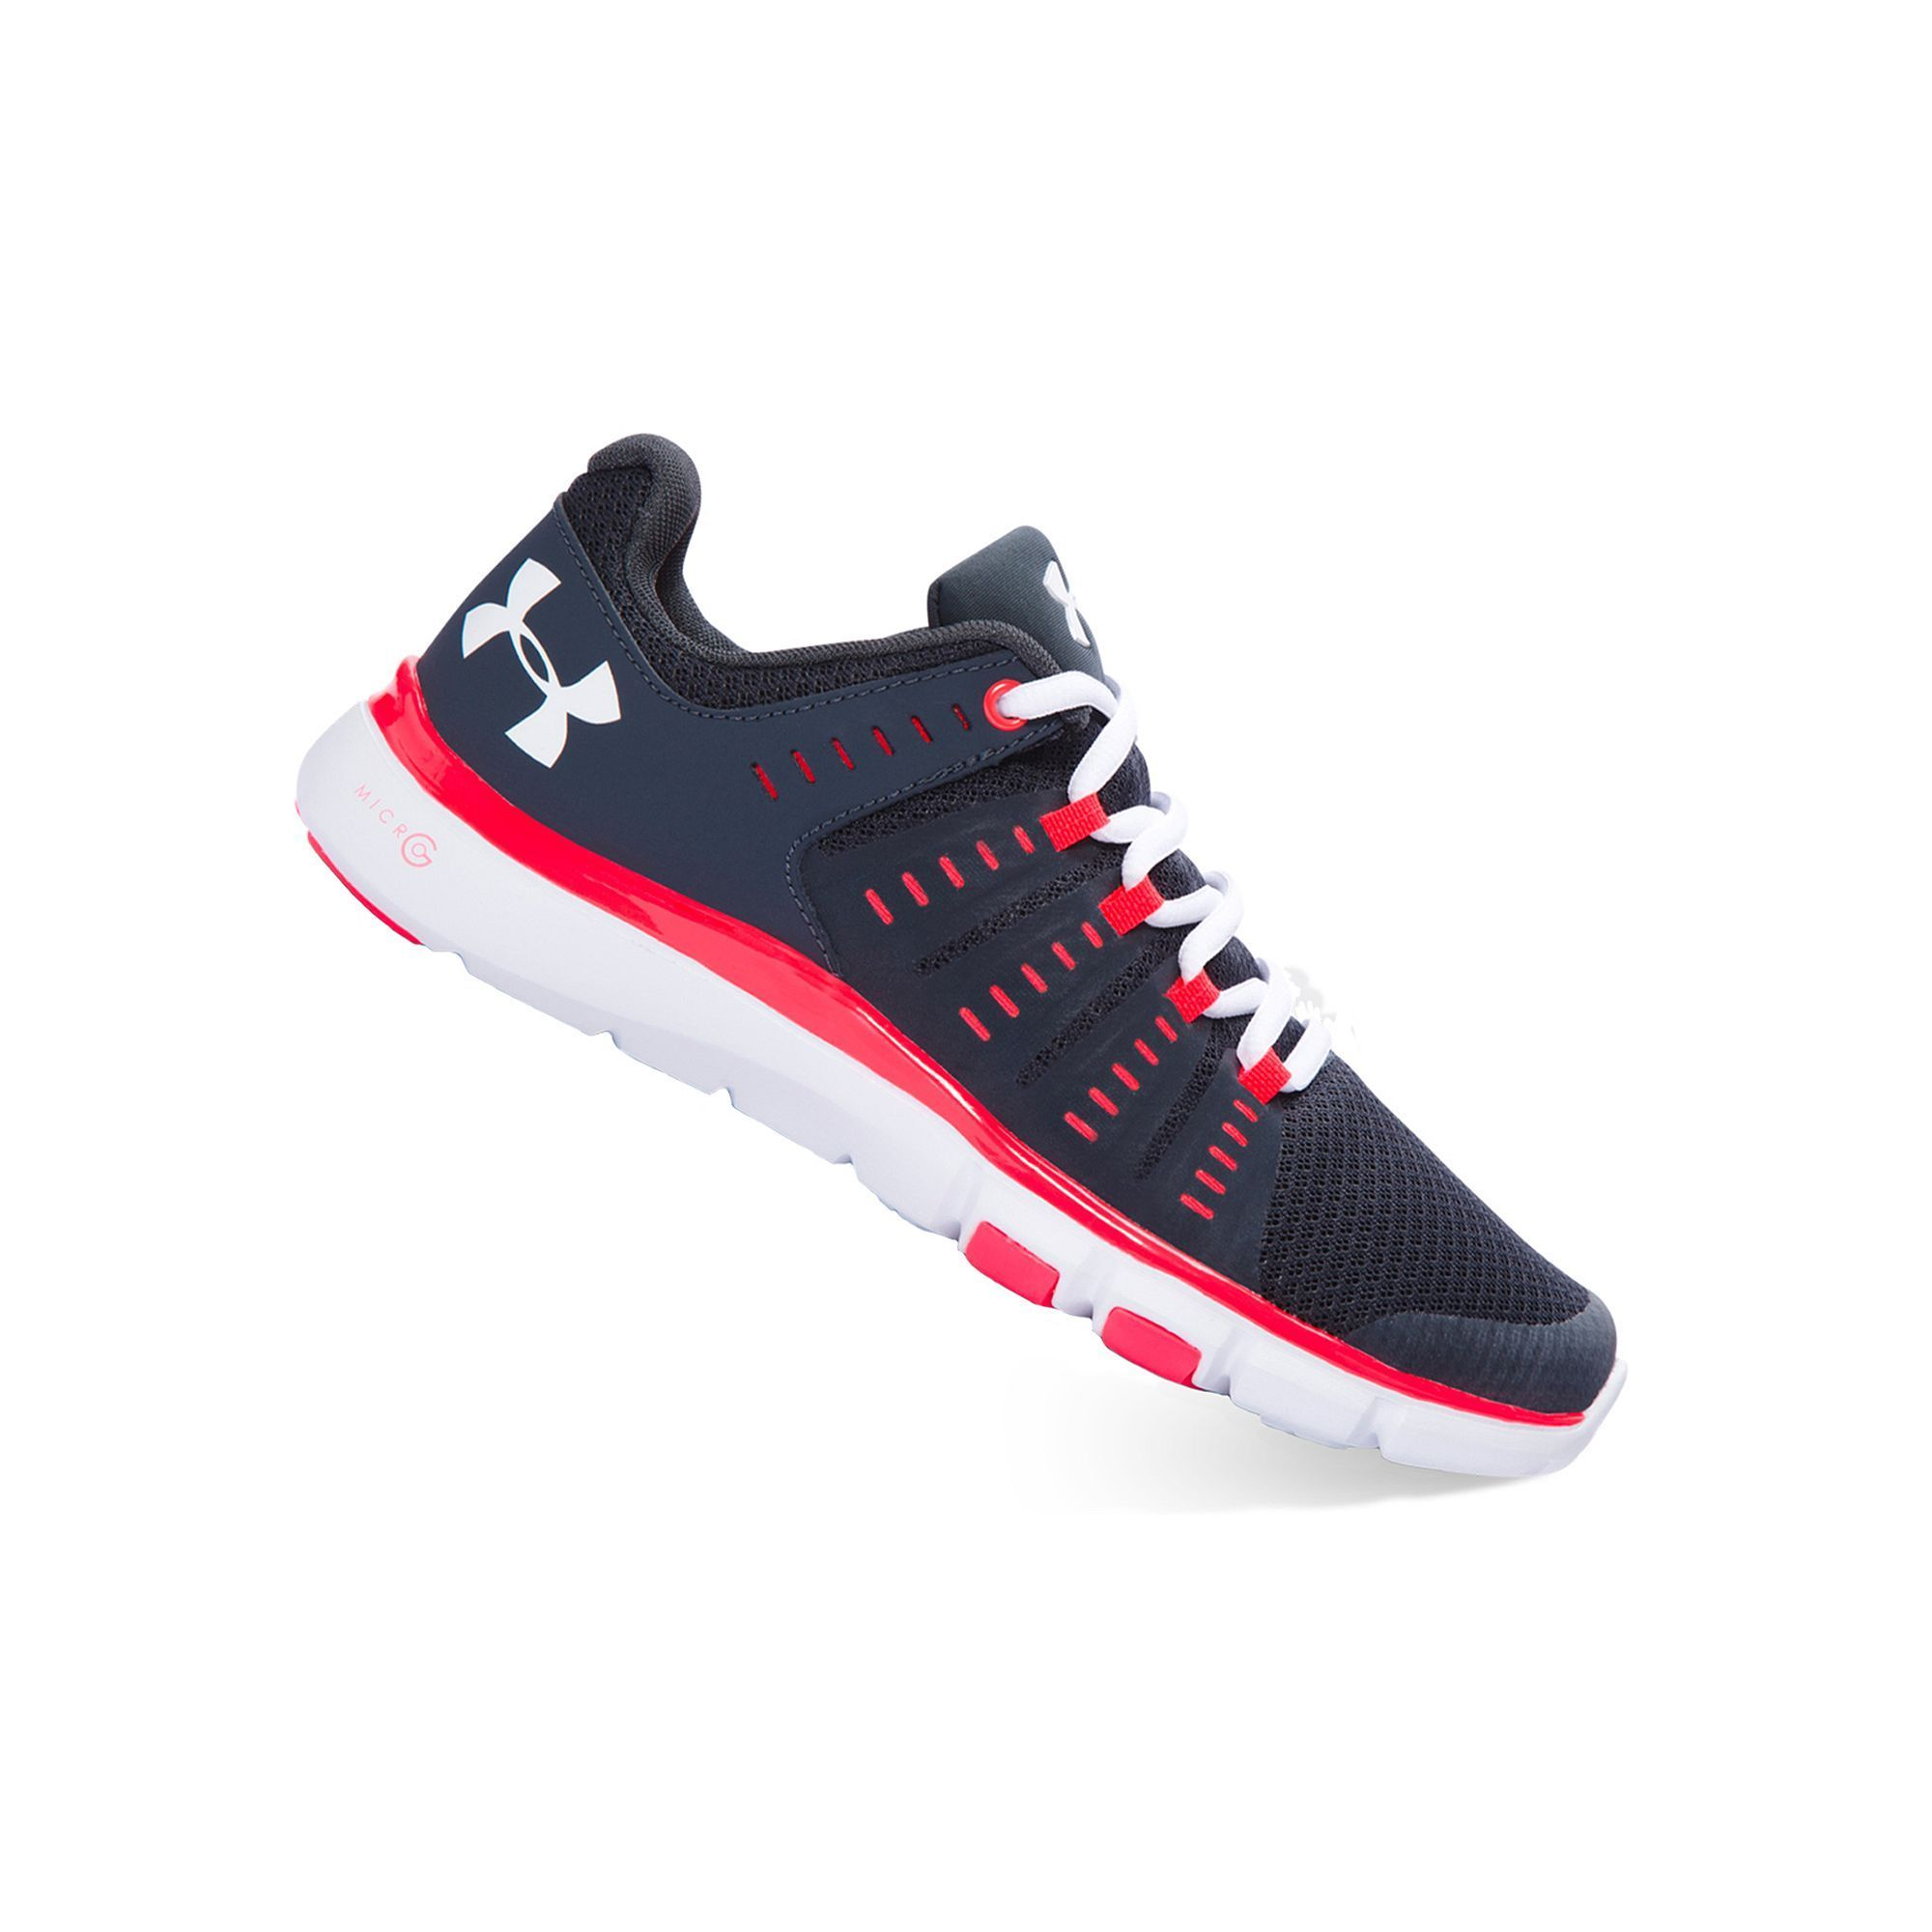 new concept bc7e3 cd68d Under Armour Micro G Limitless 2 Women's Training Shoes ...